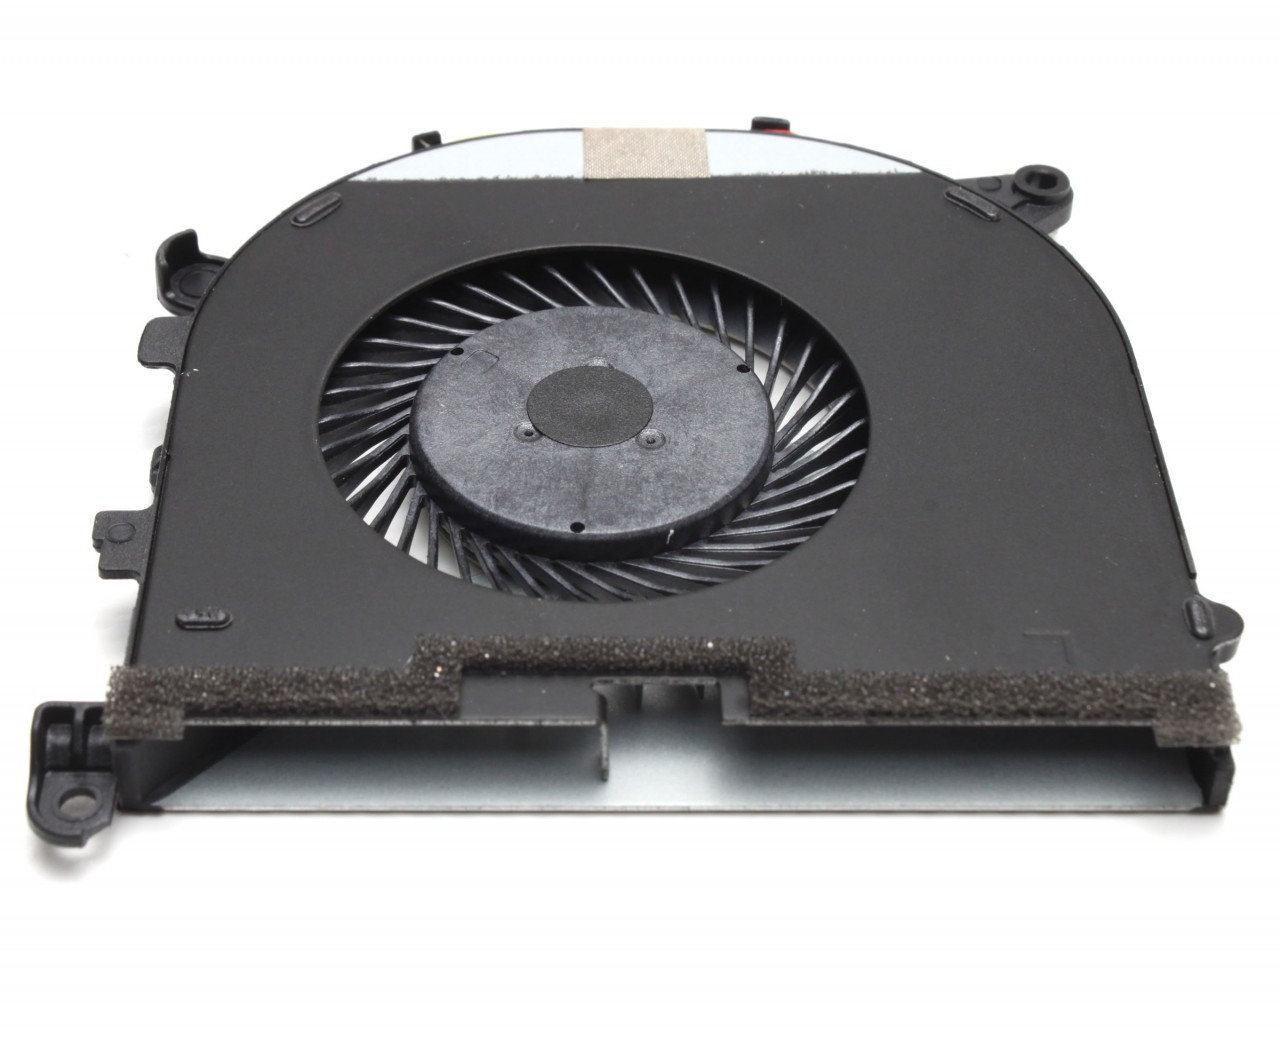 Cooler laptop Dell RVTXY-A00 Stanga imagine powerlaptop.ro 2021